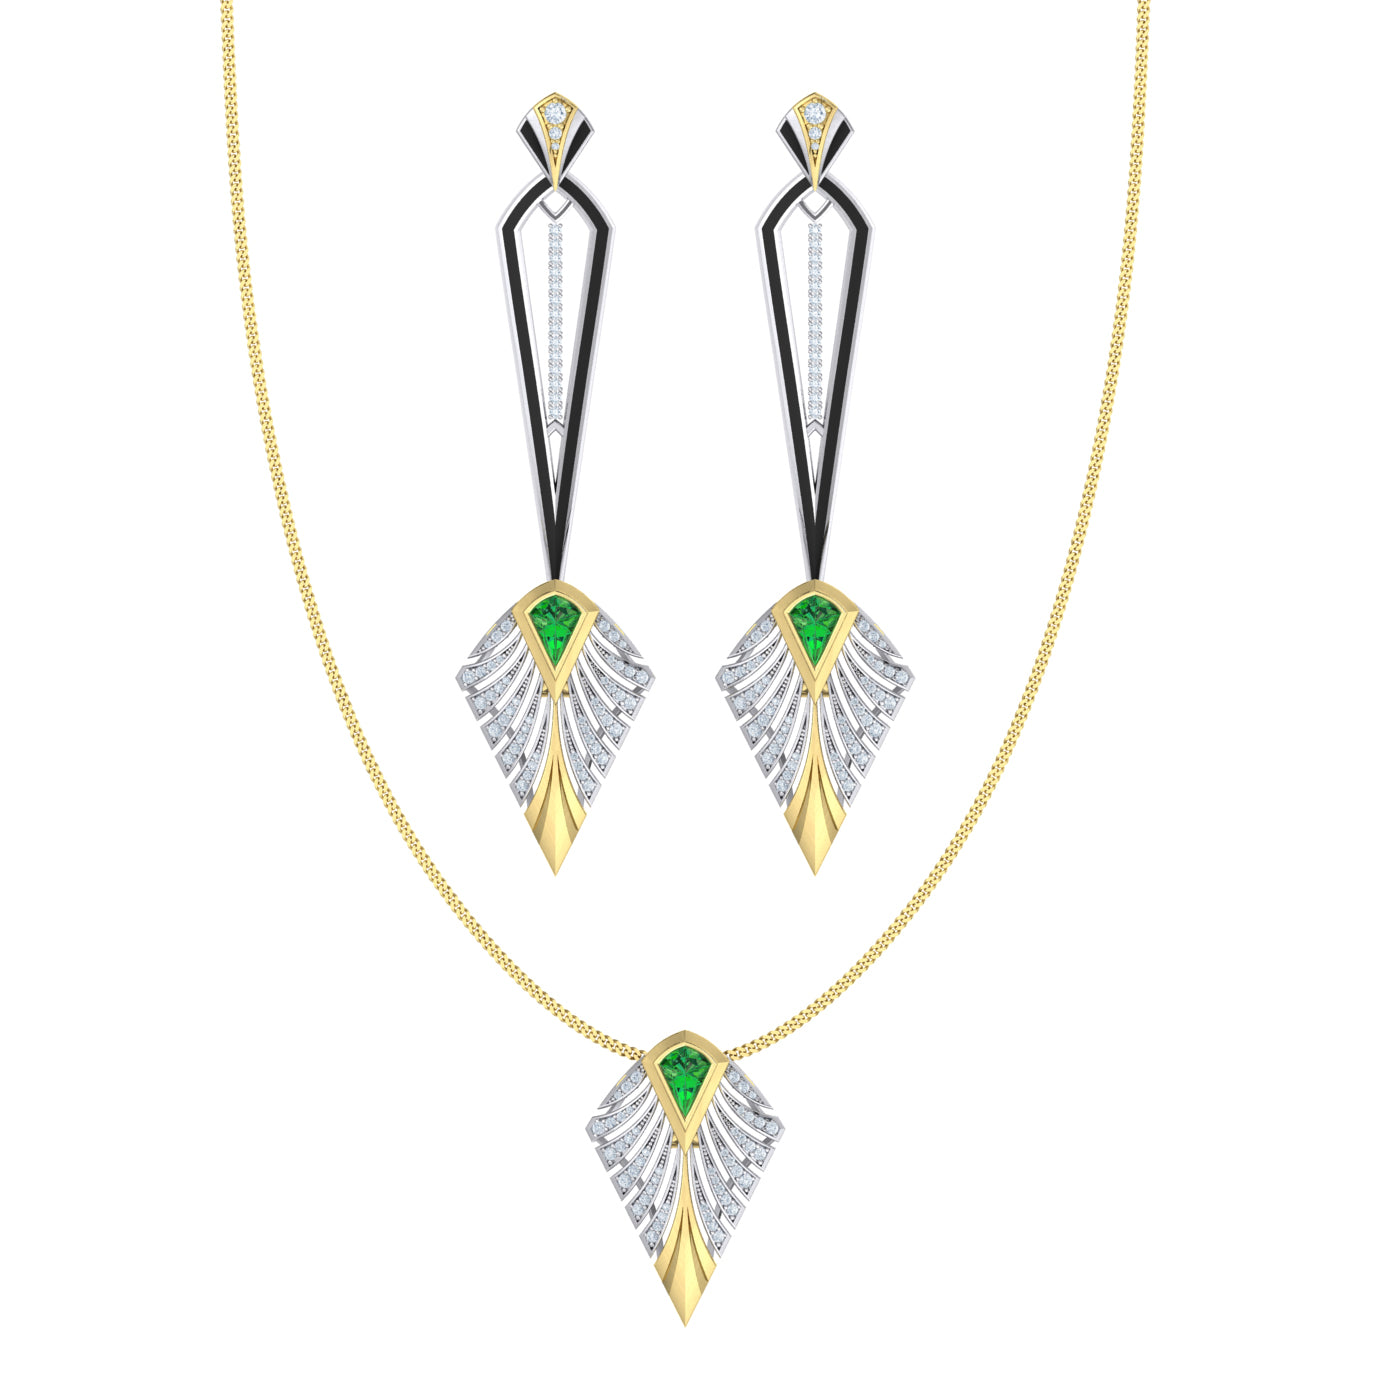 Diamond Couture Jewellery Set in 18kt gold